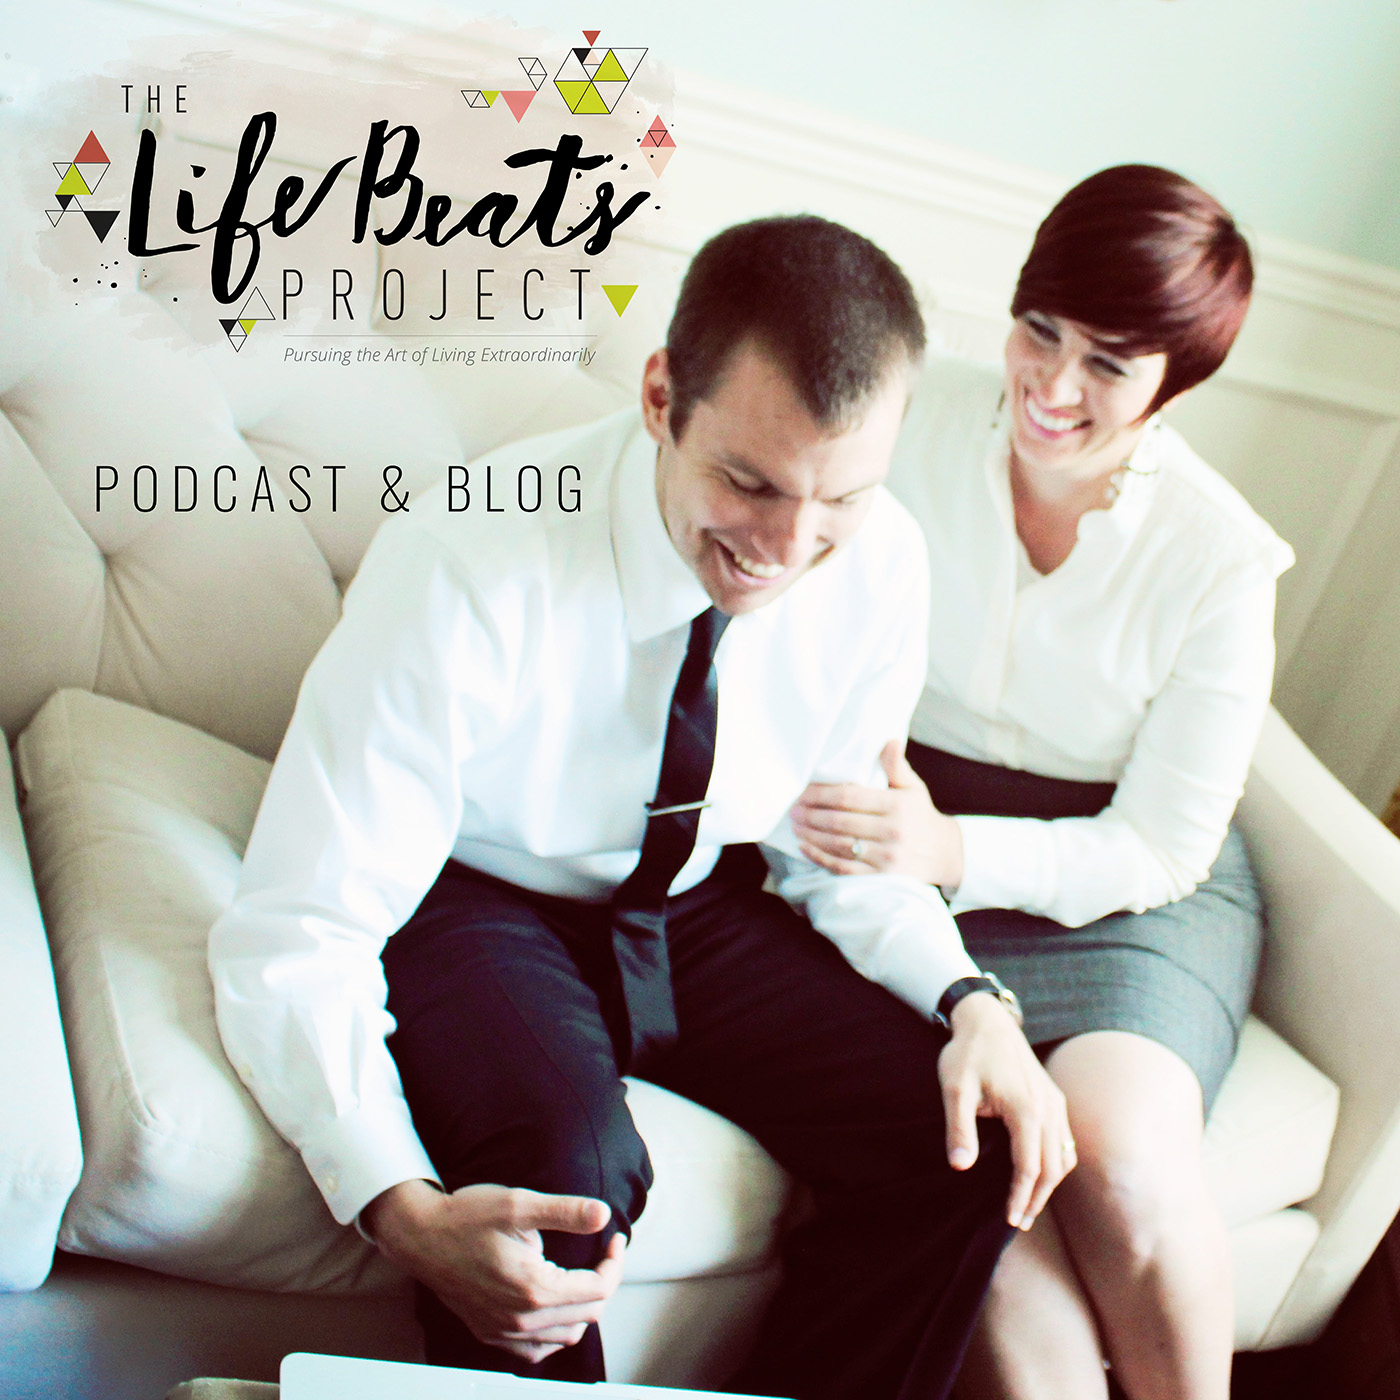 The LifeBeats Project with Briana Johnson: Pursuing the Art of Living Extraordinarily